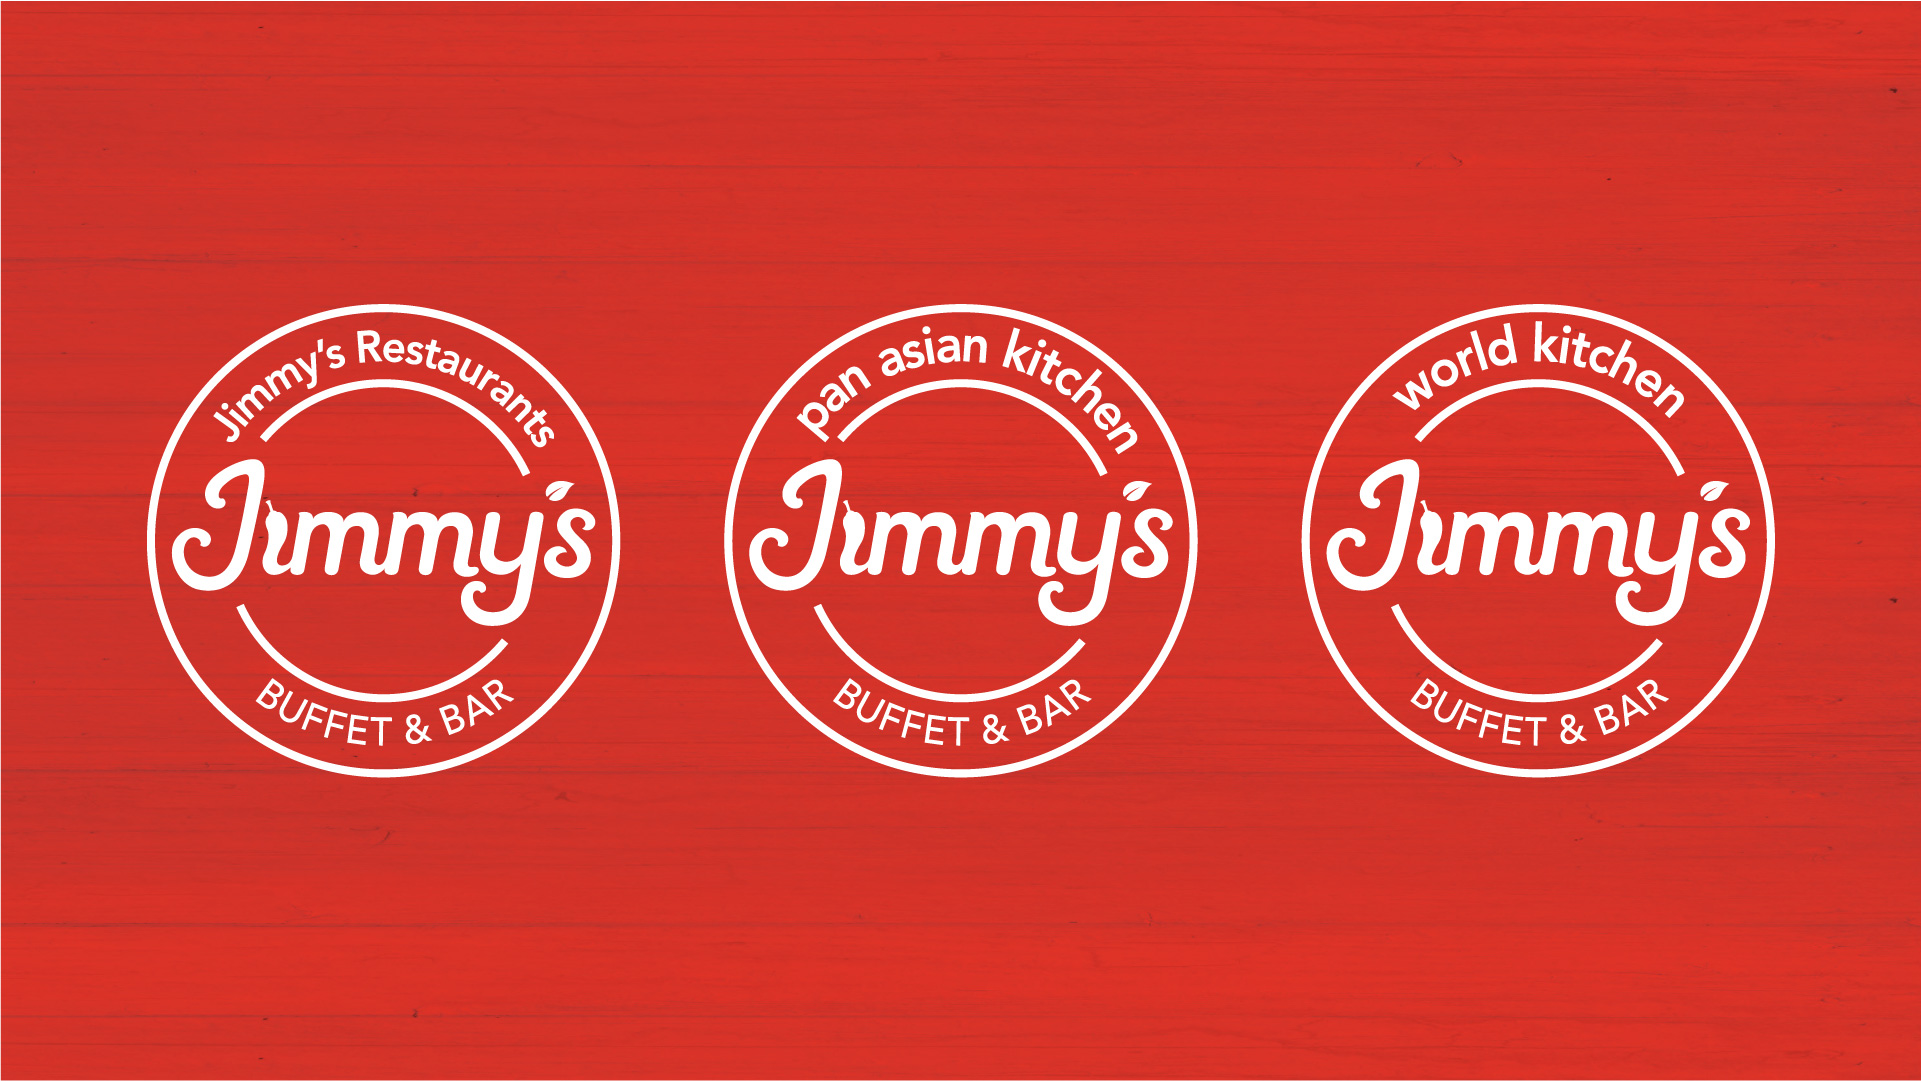 Restaurant sub brands - Jimmy's